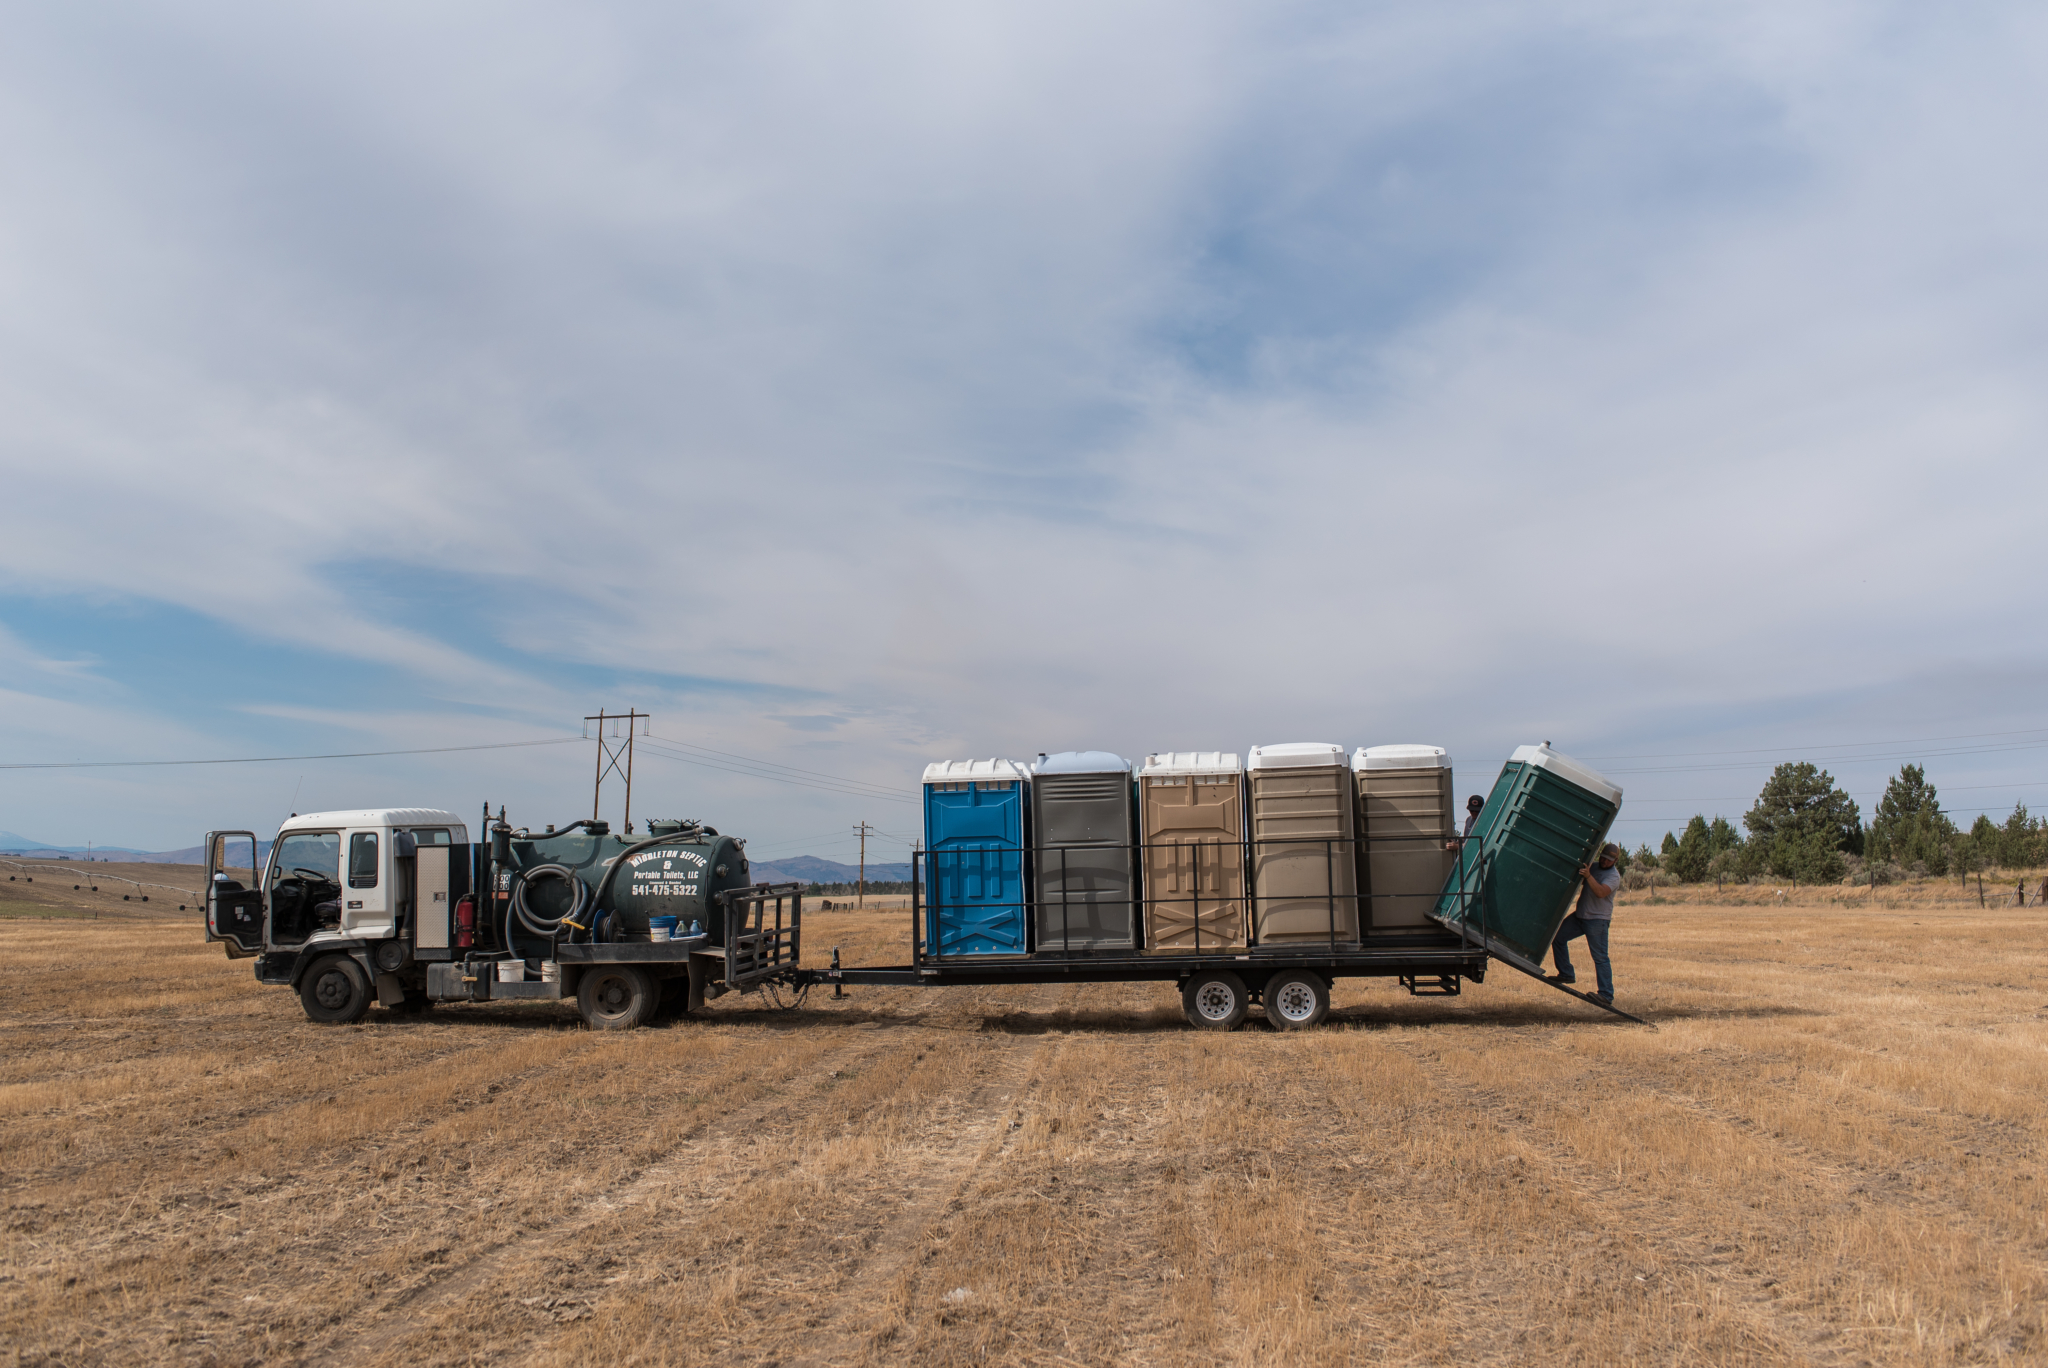 Middleton Septic & Portable Toilets worked to meet the high demand for portable toilets that has resulted from the influx of campers and tourists descending on Madras, Oregon, for the August 2017 total eclipse. Here crew members off-load units in a farm field.